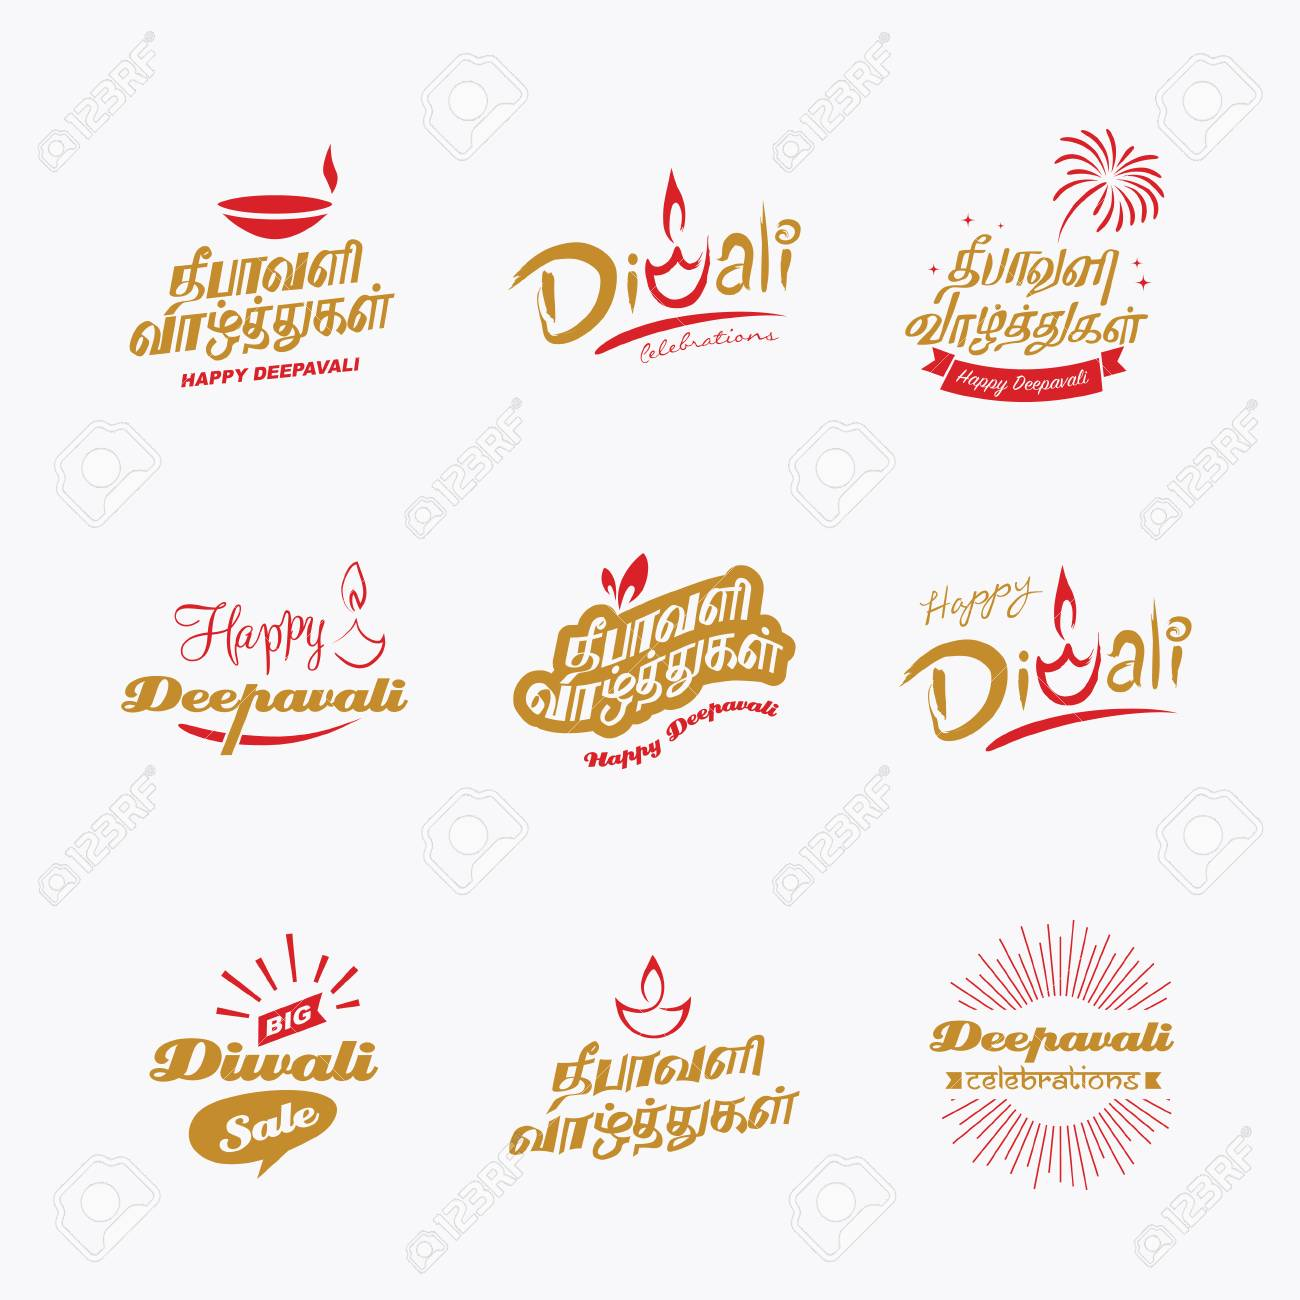 Deepavali greetings lettering set tamil character deepavali deepavali greetings lettering set tamil character m4hsunfo